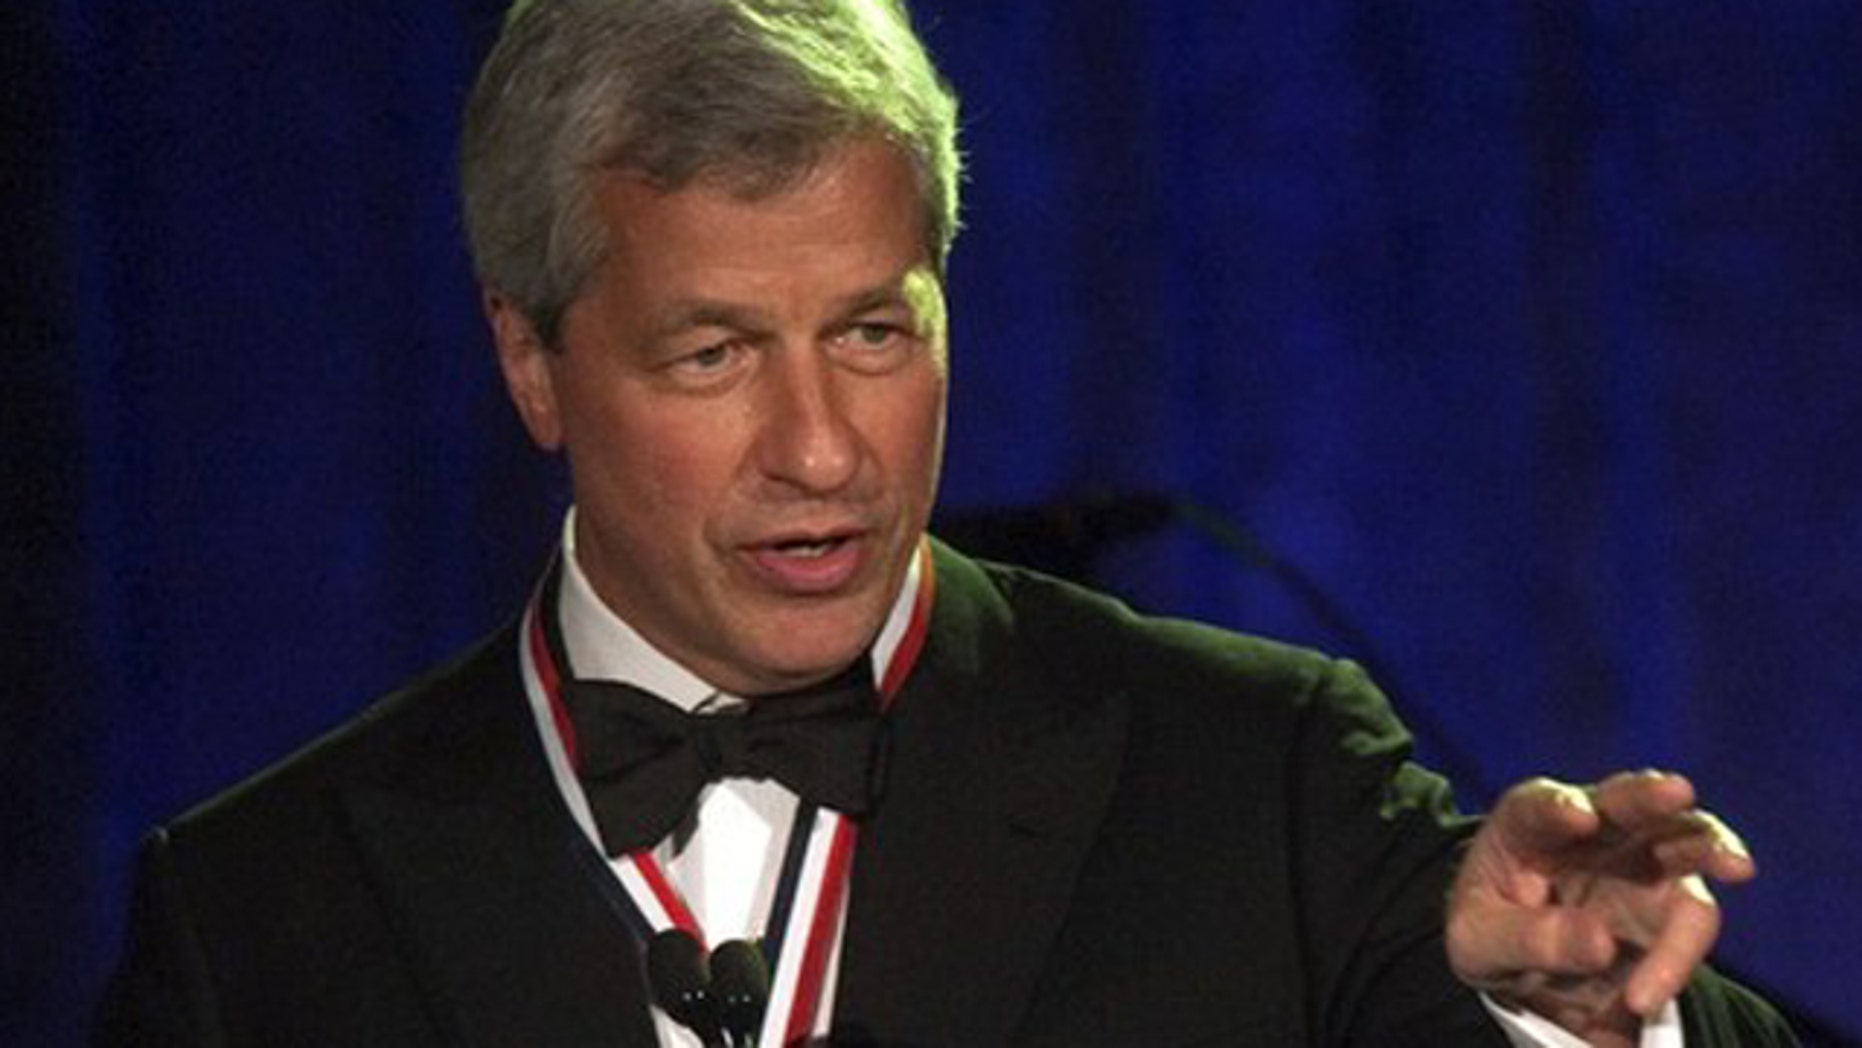 May 24, 2012: Jamie Dimon, chairman and chief executive of JP Morgan Chase and Co, speaks during the Intrepid Sea, Air & Space Museum's Annual Salute to Freedom dinner in New York.